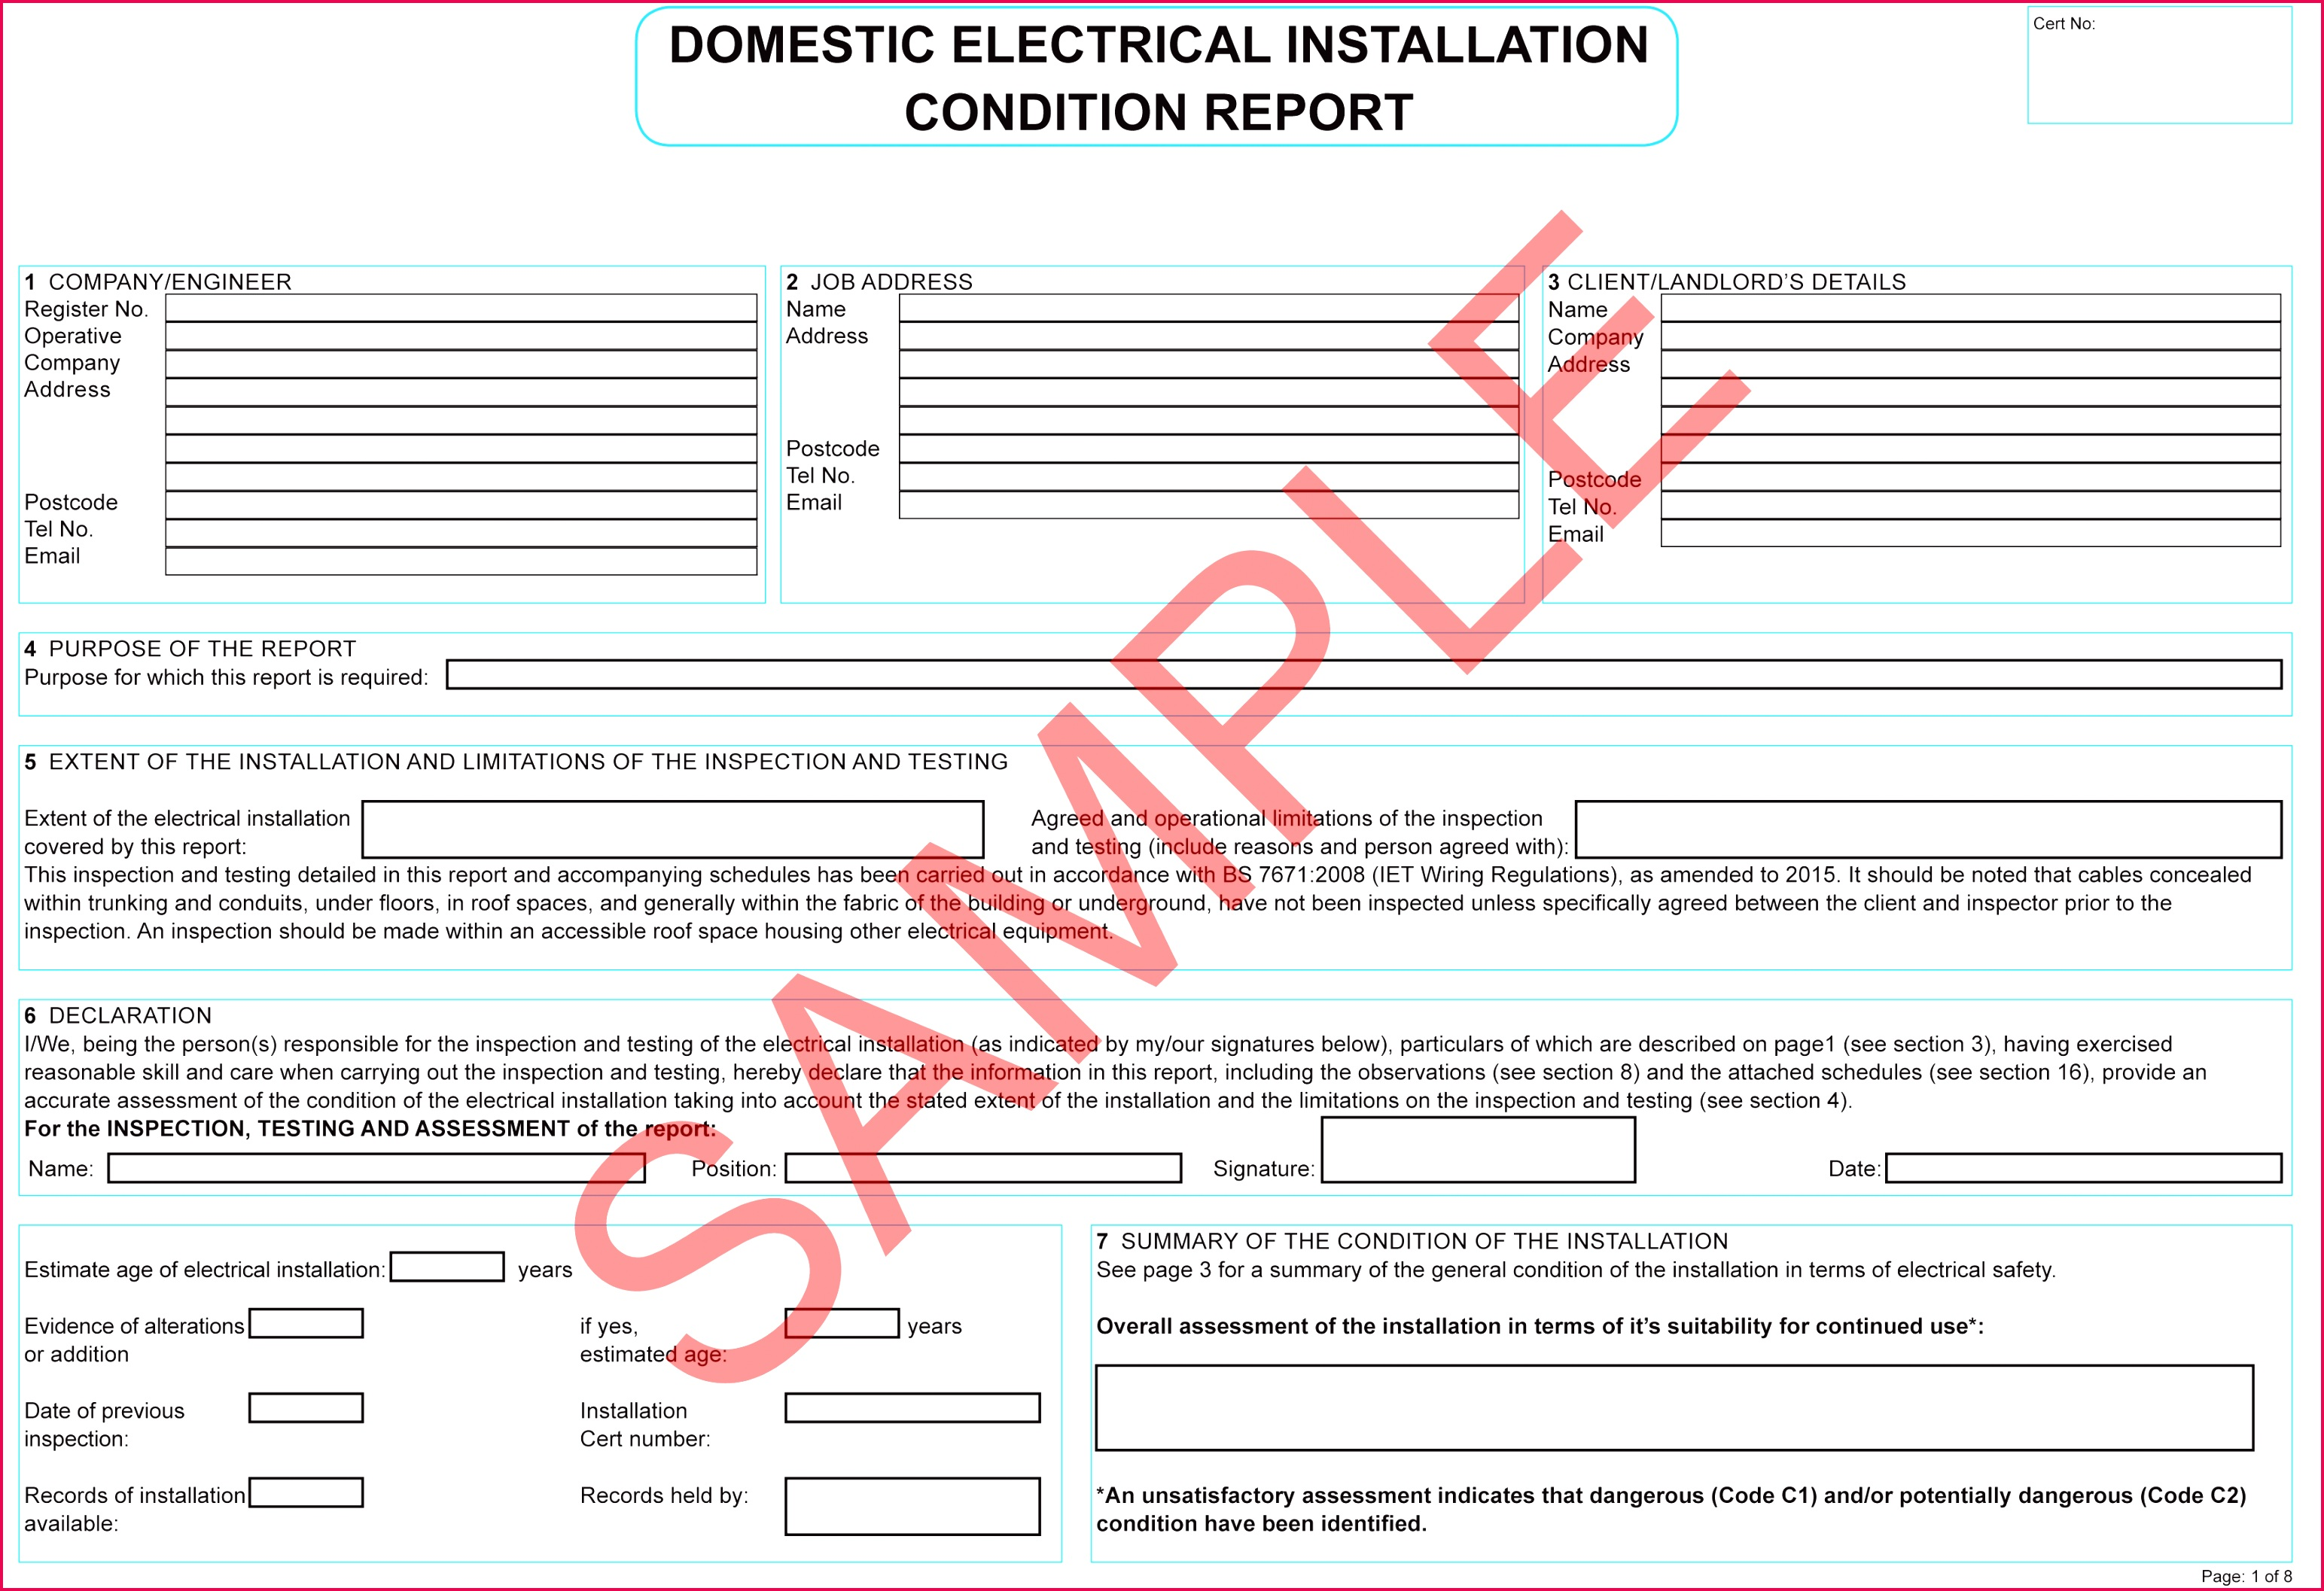 Domestic Electrical Installation Condition Report v5